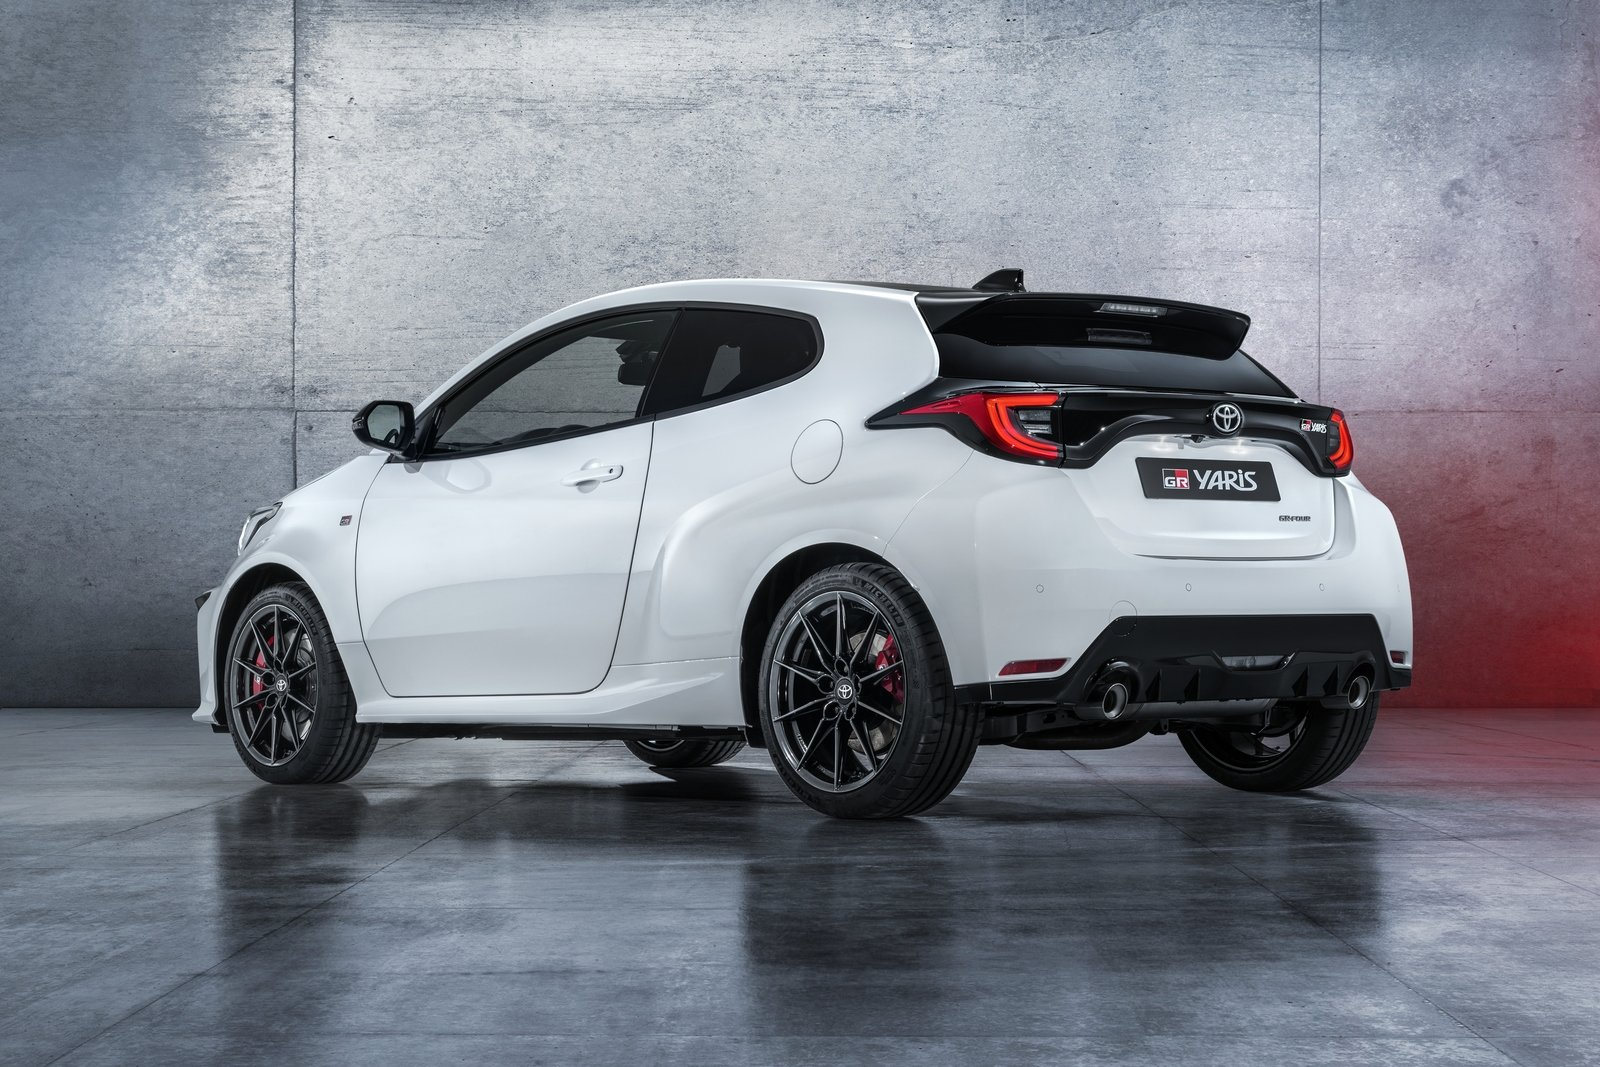 Toyota Ft 86 >> 2020 Toyta GR Yaris - The Closest Thing to a WRC Car You ...